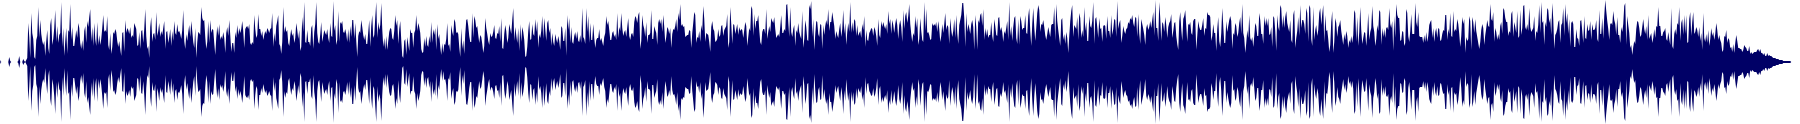 waveform of track #72300